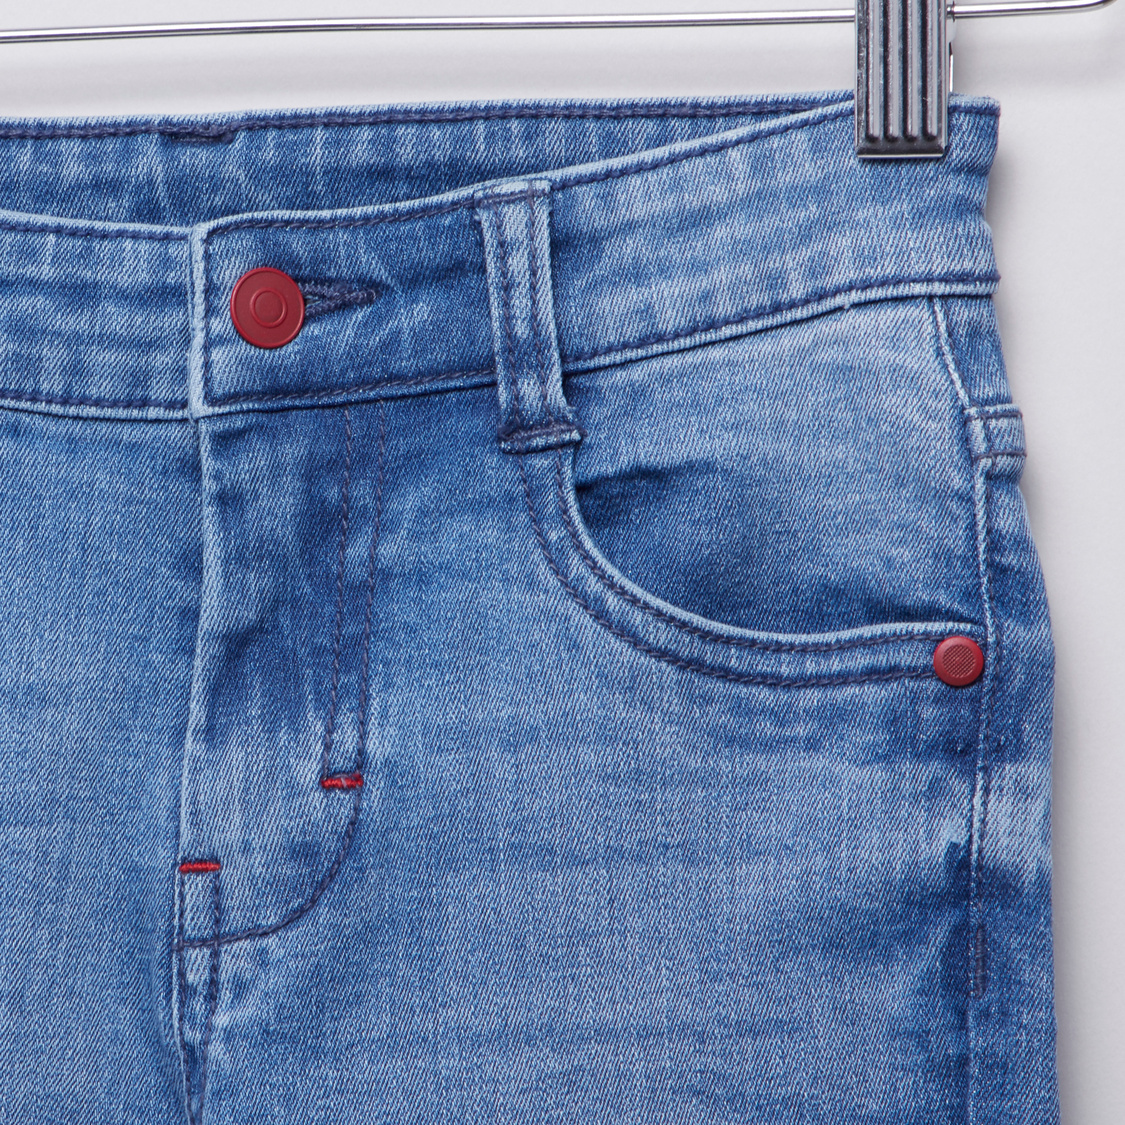 Textured Jeans with Pockets